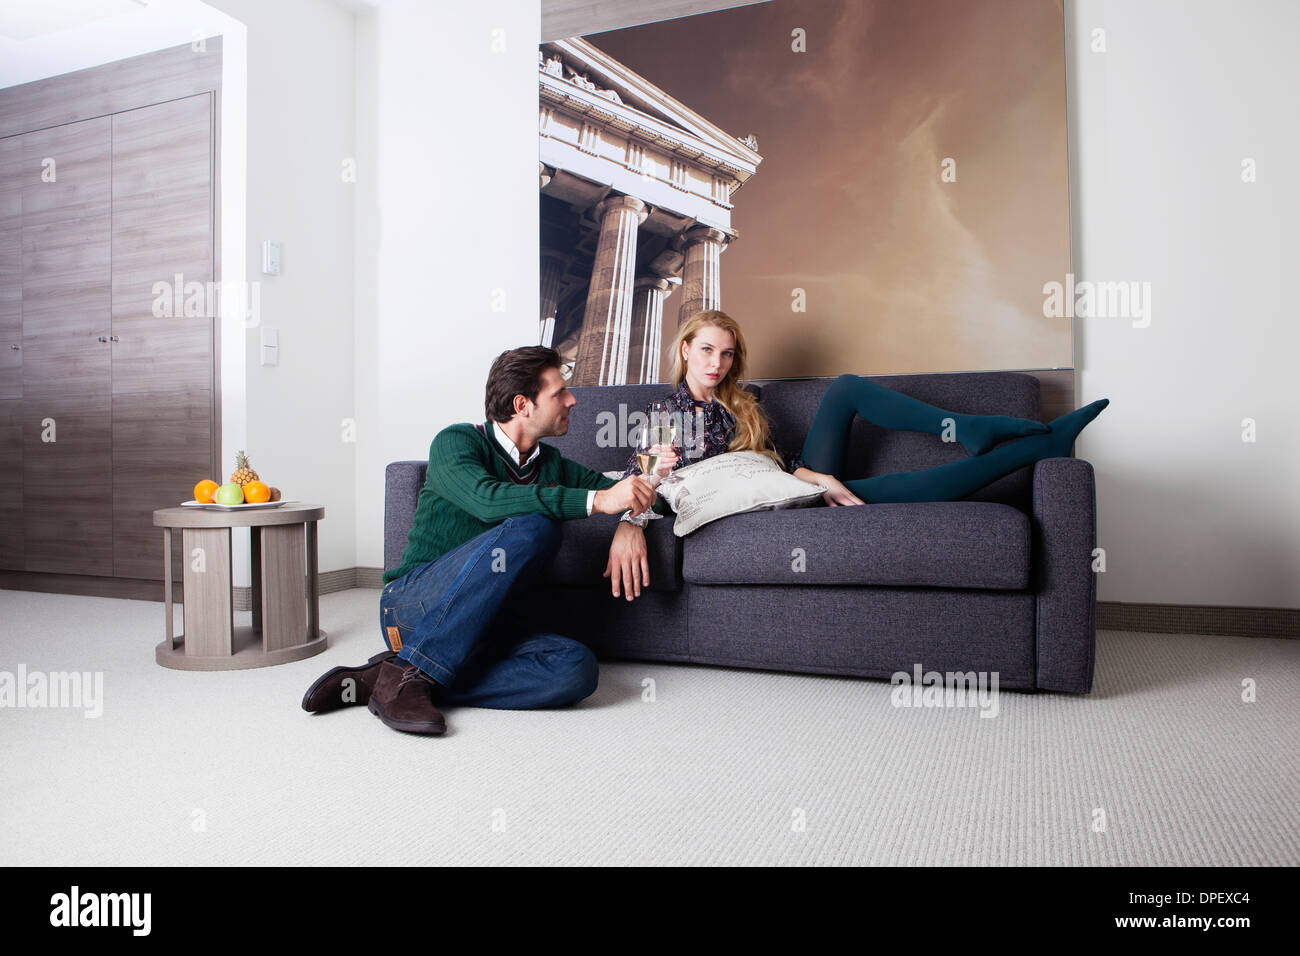 Man and woman on a couch in a hotel room - Stock Image